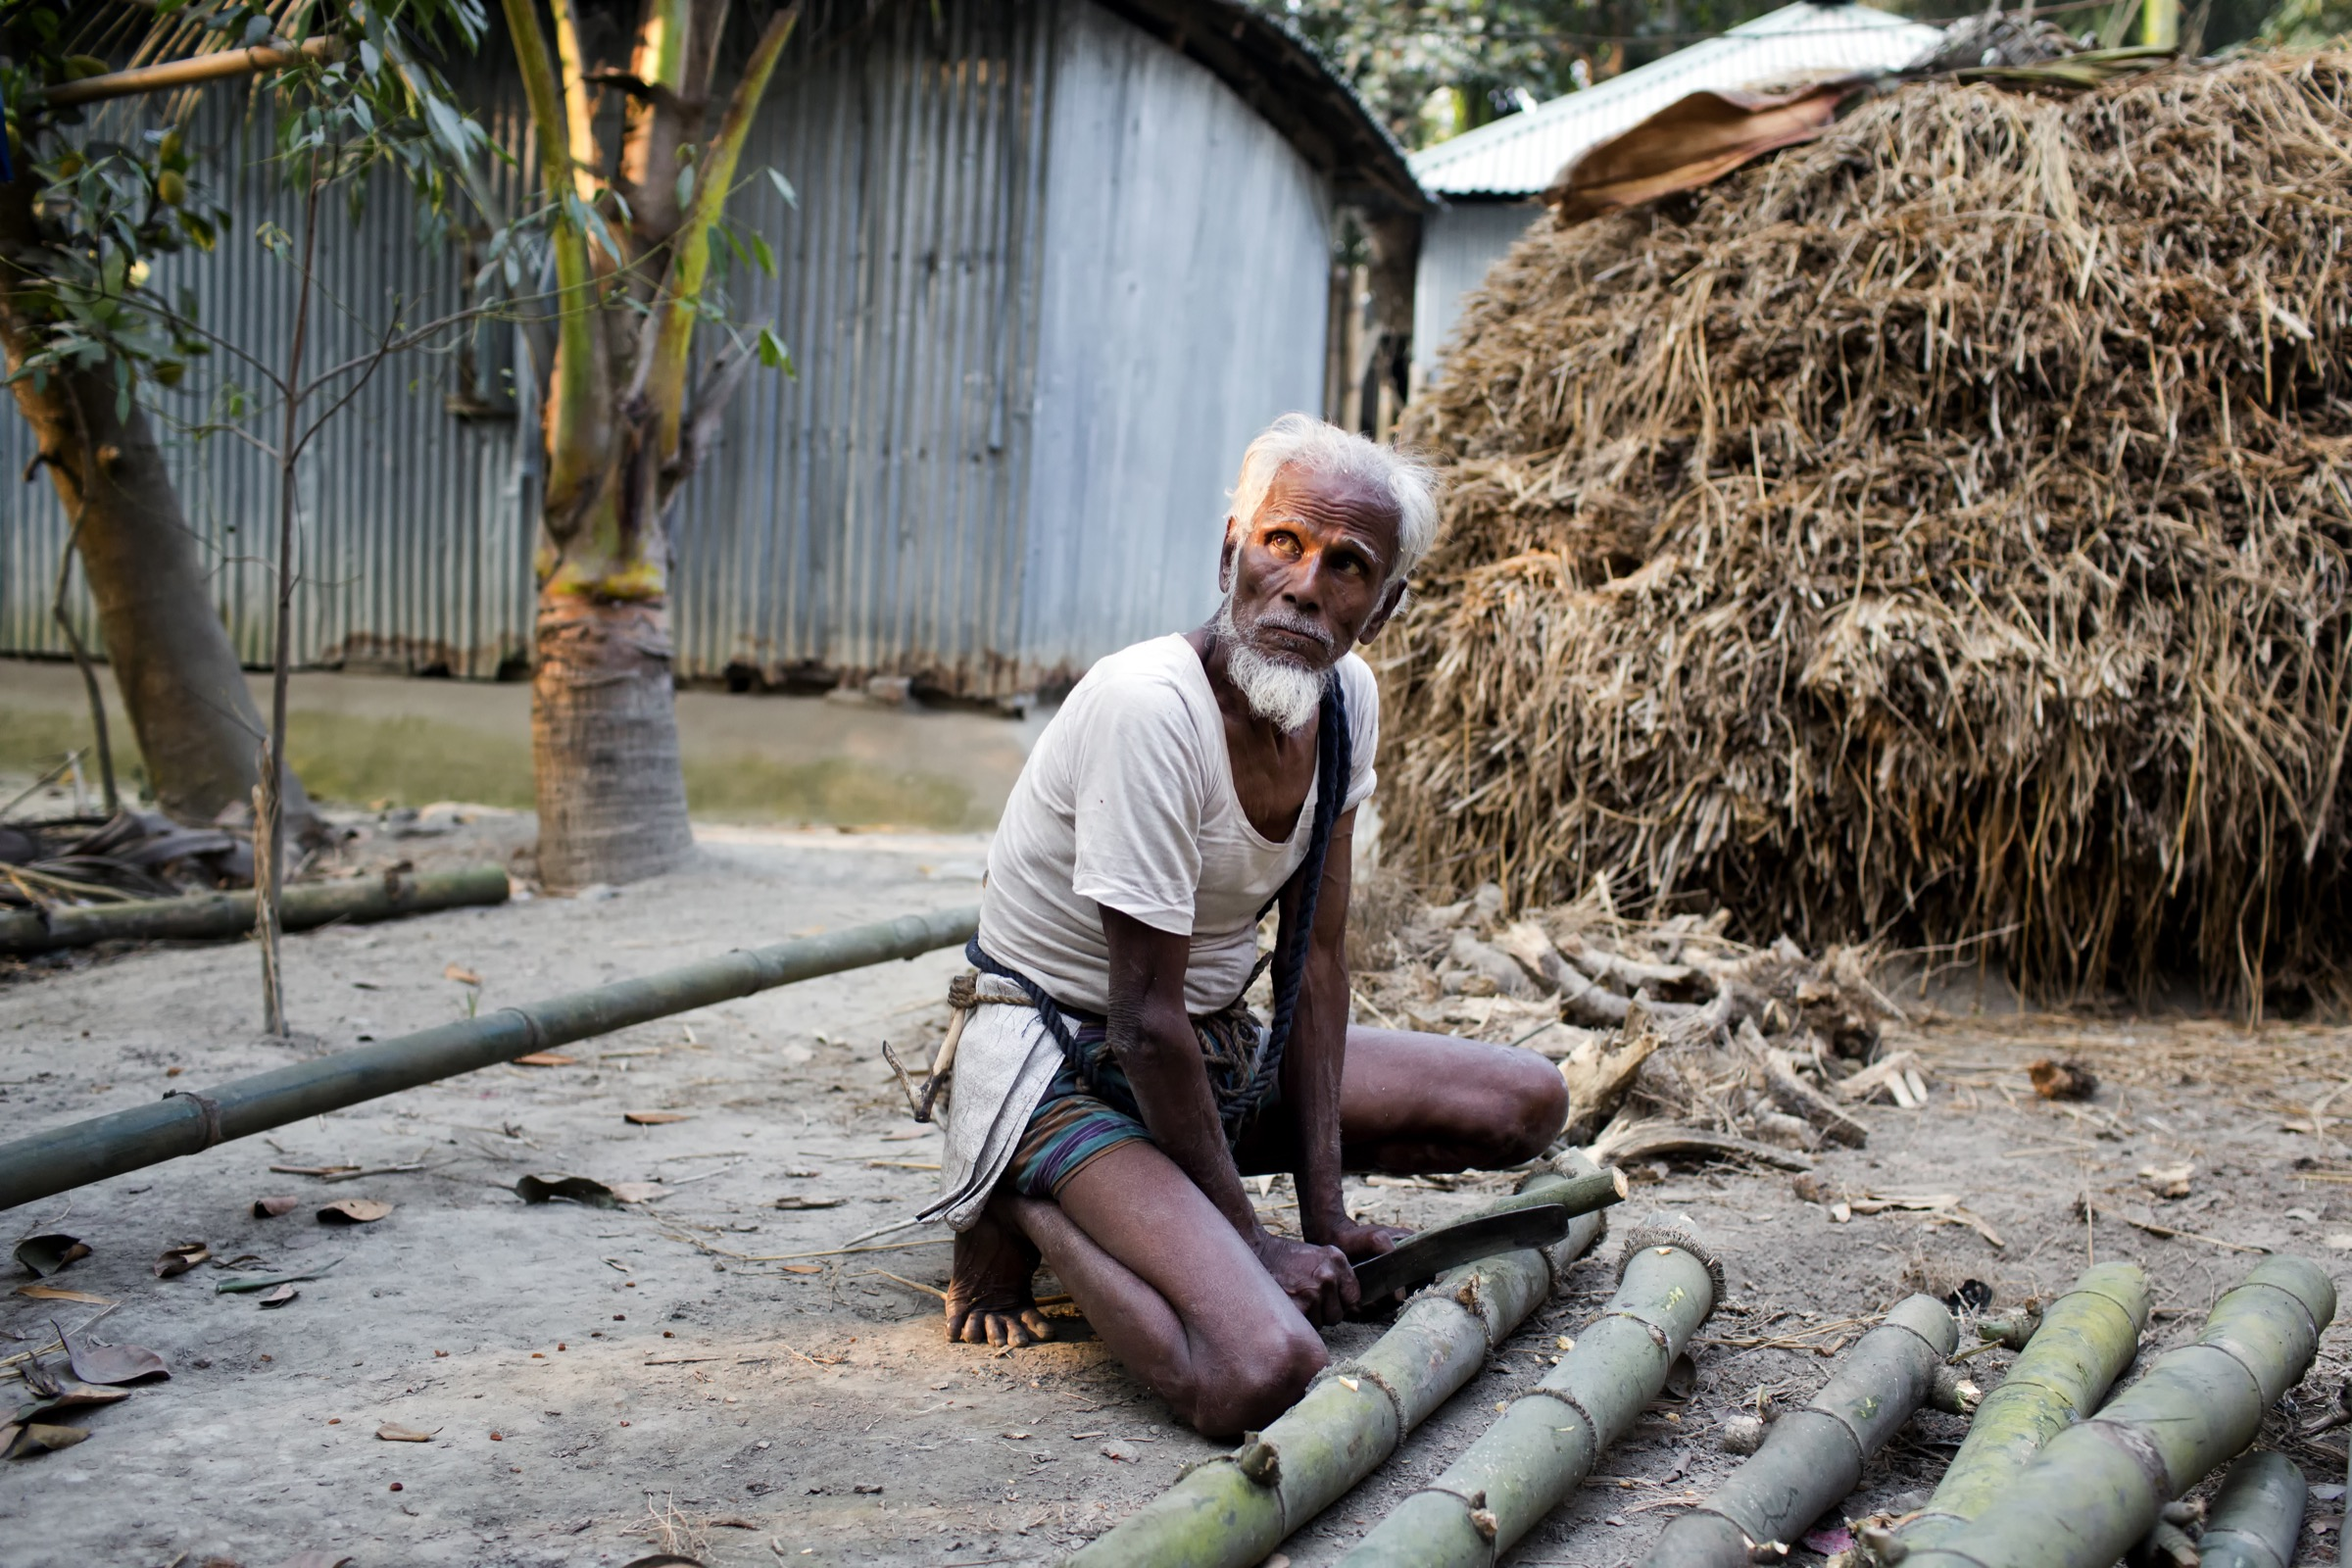 This 85-year-old resident of Mohonpur supplements his meager income as a wood collector by tapping the date palm trees near his home and selling the sap to others in the village. Photograph by A.M. Ahad